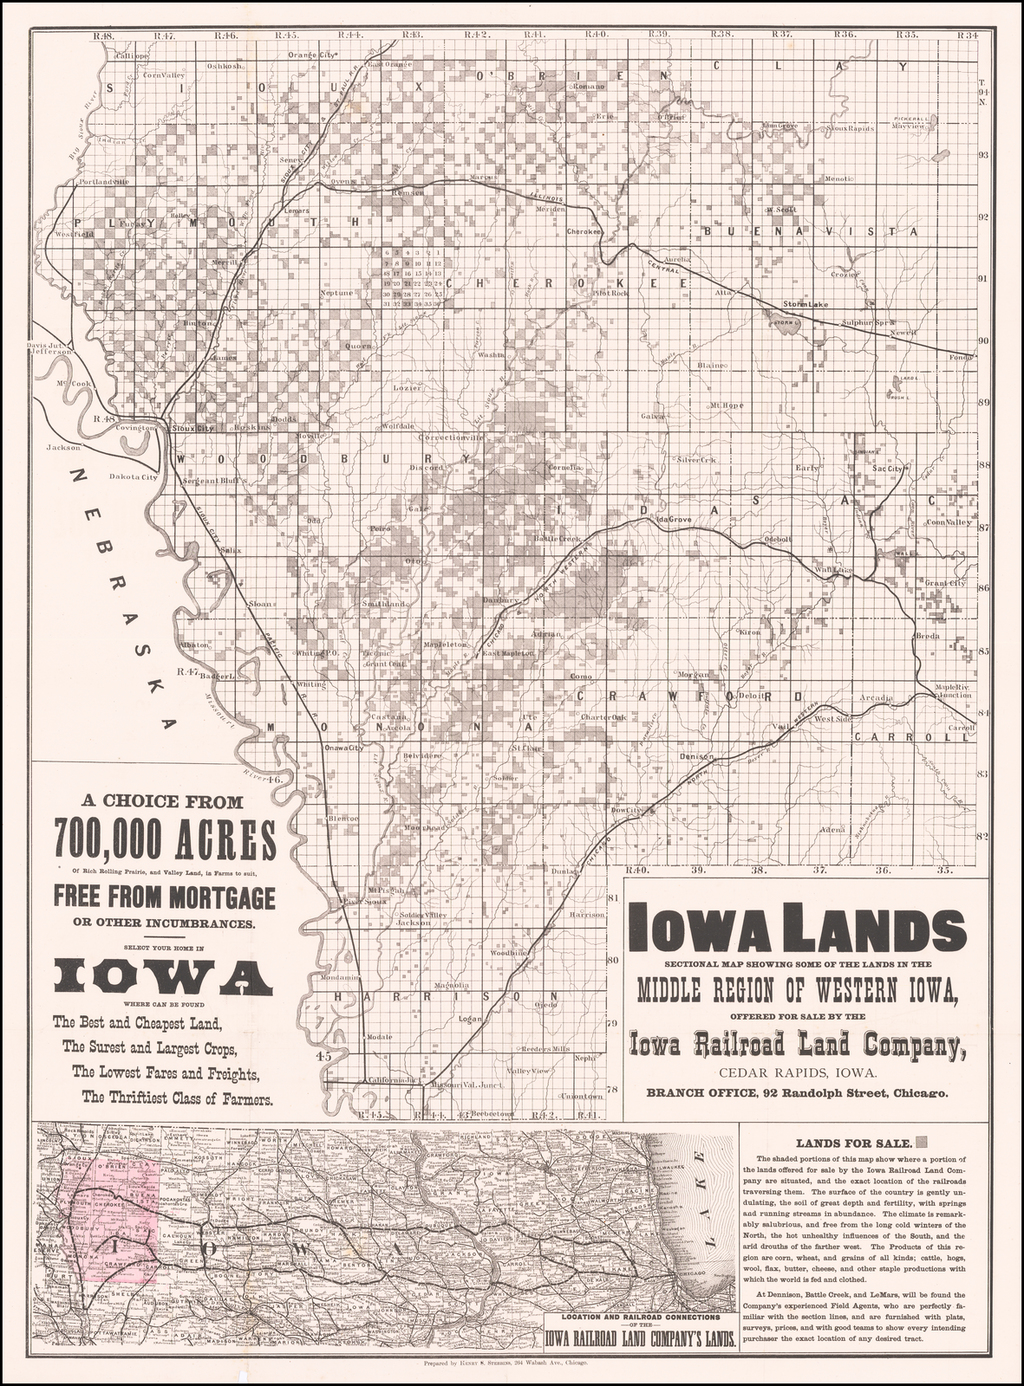 Iowa Lands Sectional Map Showing Some Of The Lands In The Middle Region of Western Iowa, Offered For Sale By Iowa Railroad Land Company, Cedar Rapids, Iowa . . . . By Henry S. Stebbins